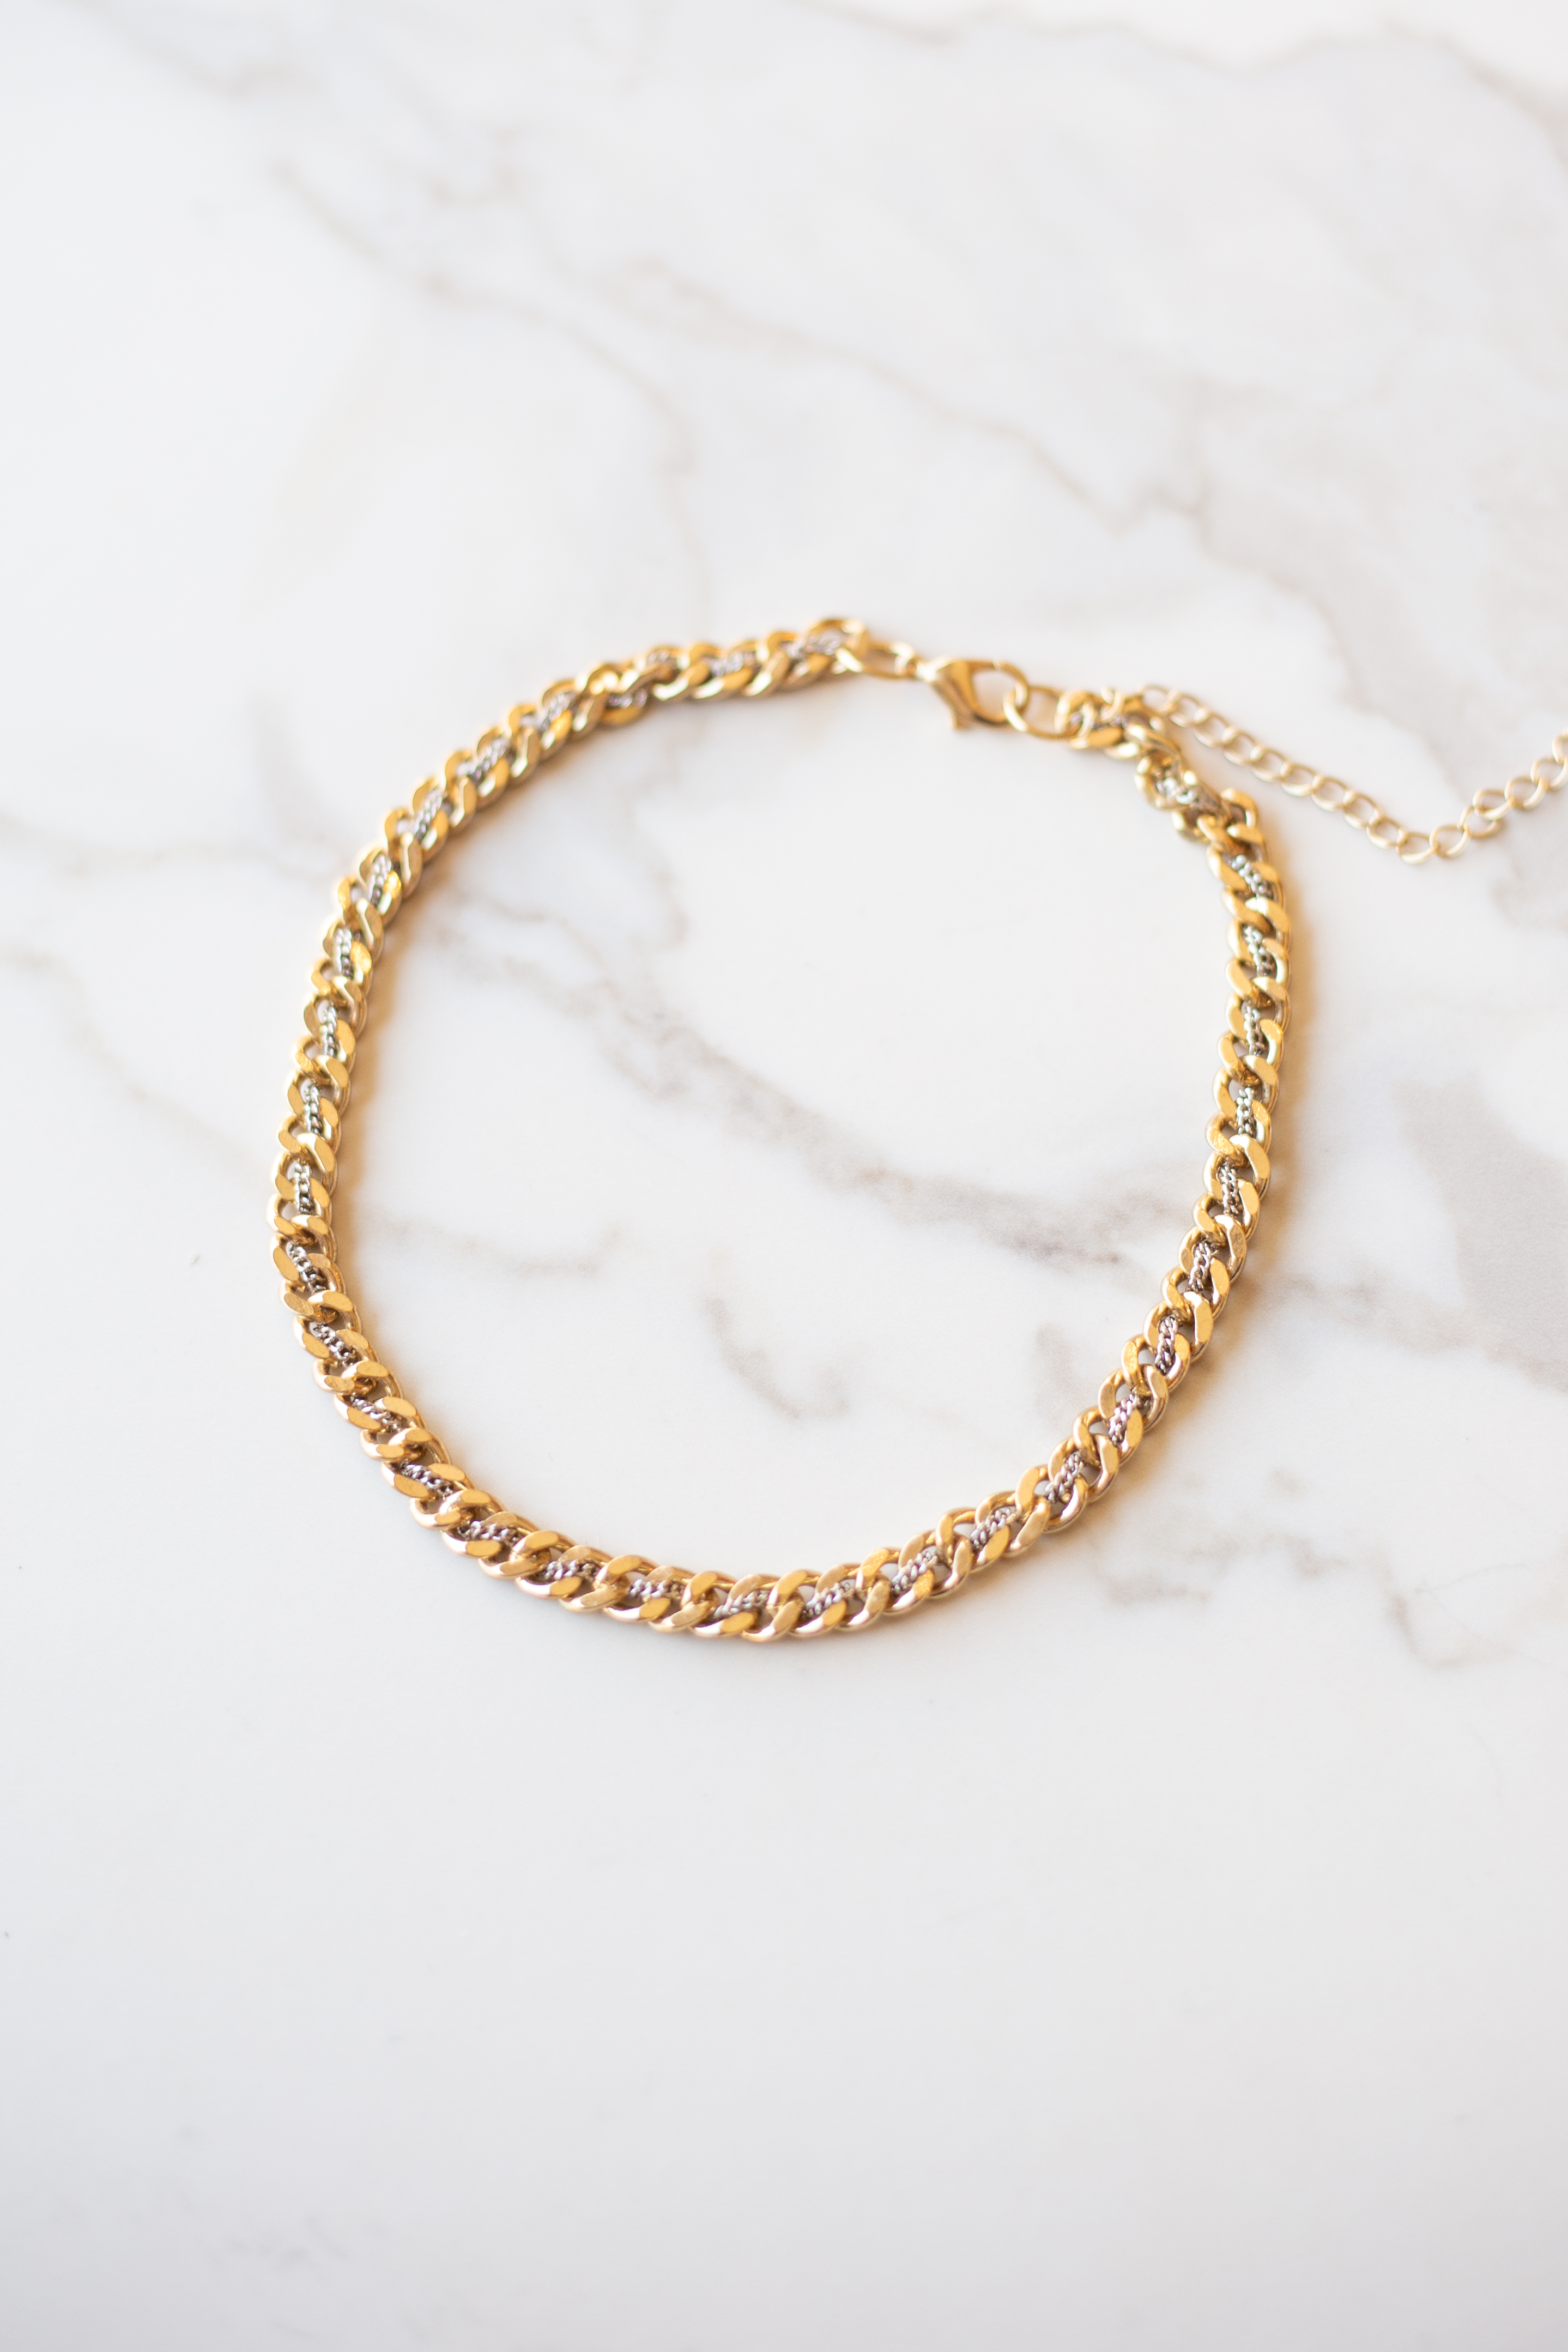 Gold and Silver Threaded Double Chain Choker Necklace